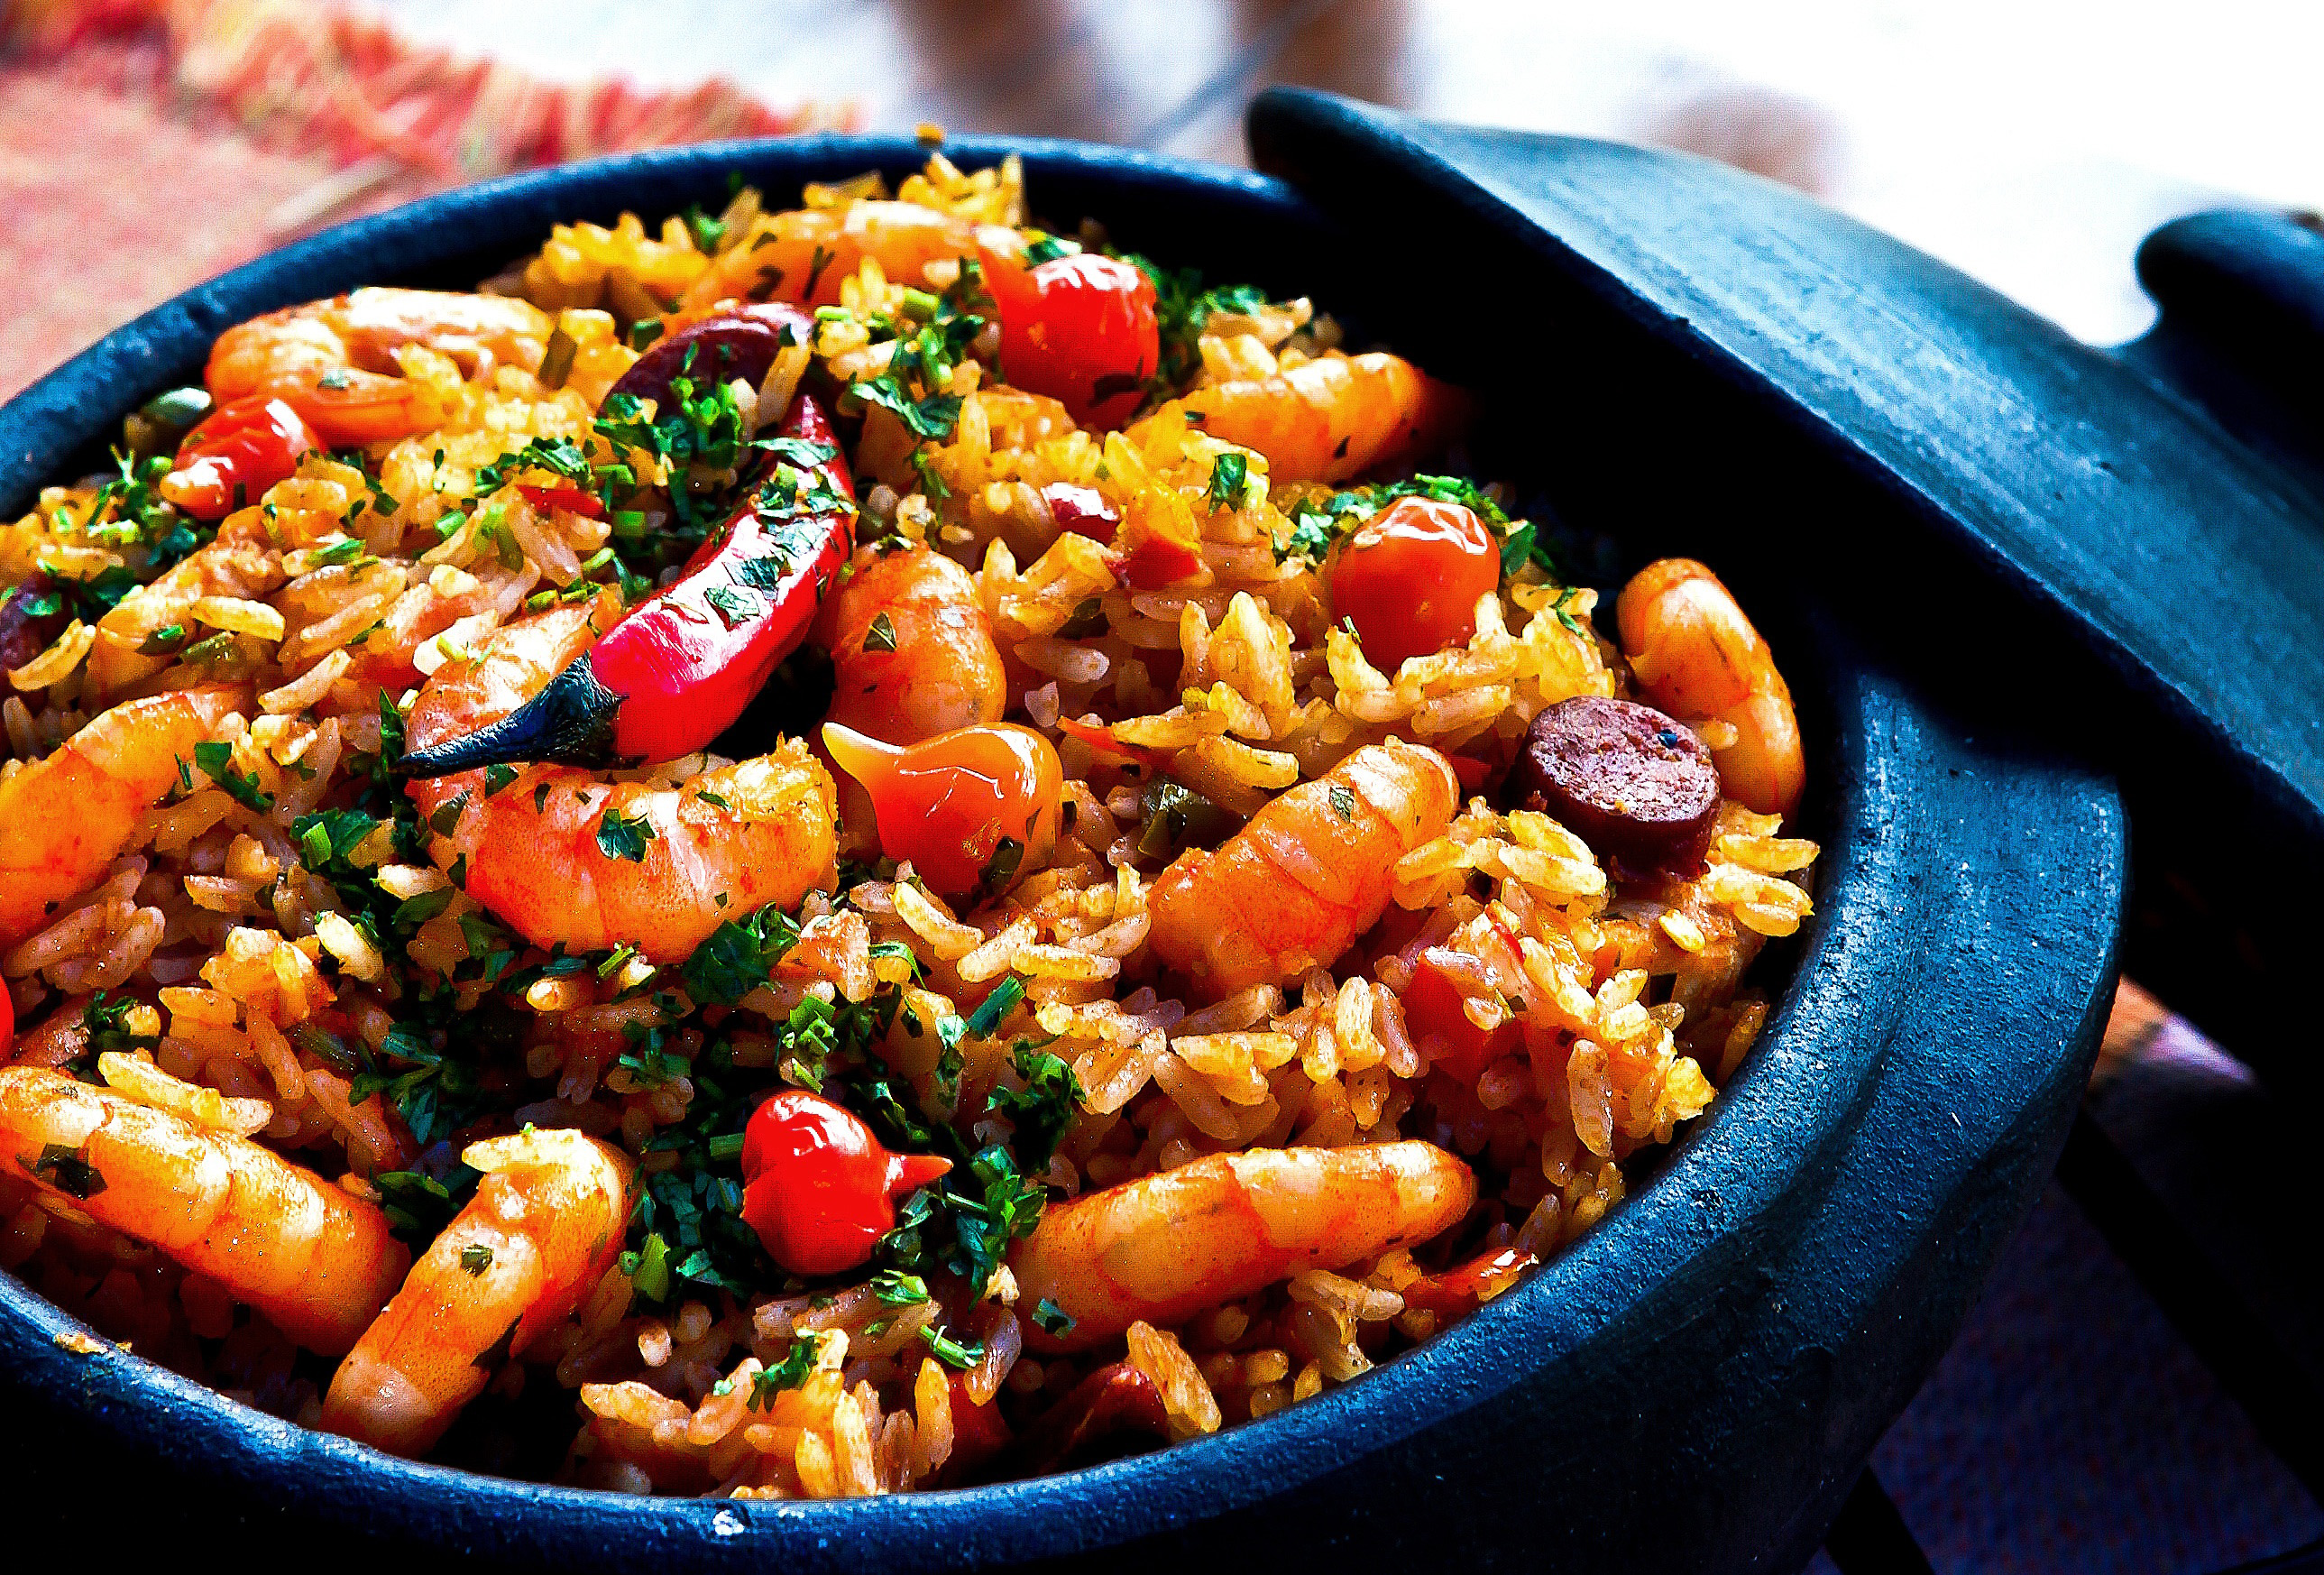 Emilianos offers a selection of paellas to please the most discerning tastes